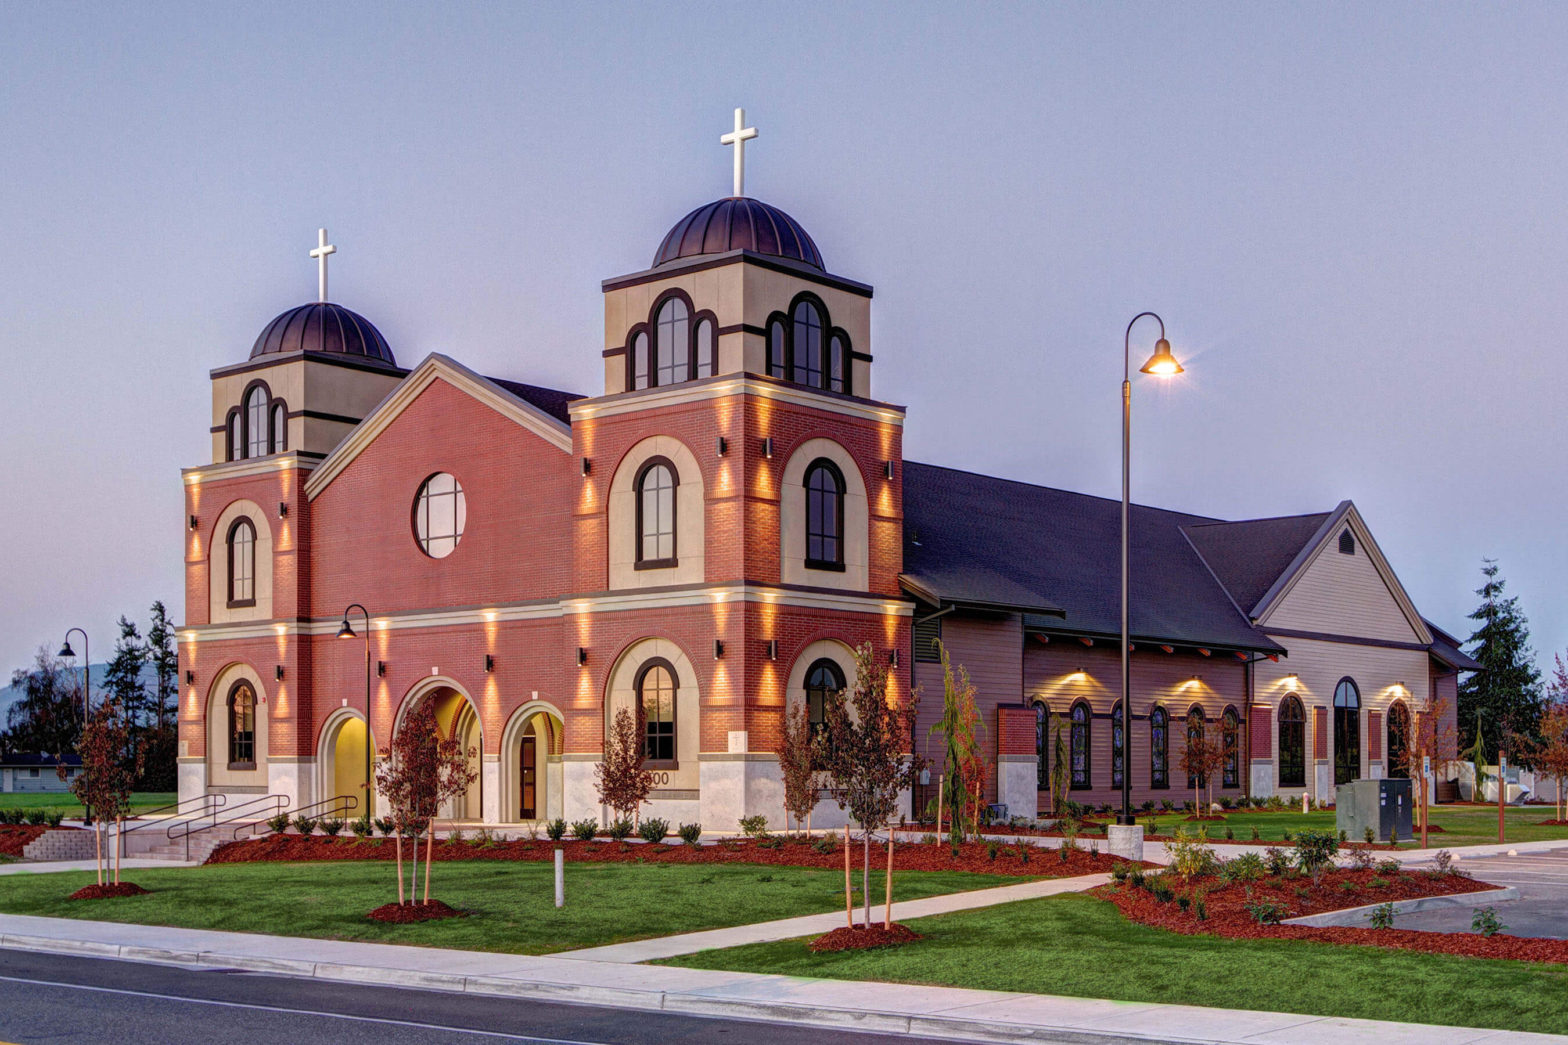 Immaculate Conception Catholic Church at dusk, Chad Fisher Construction general contractor